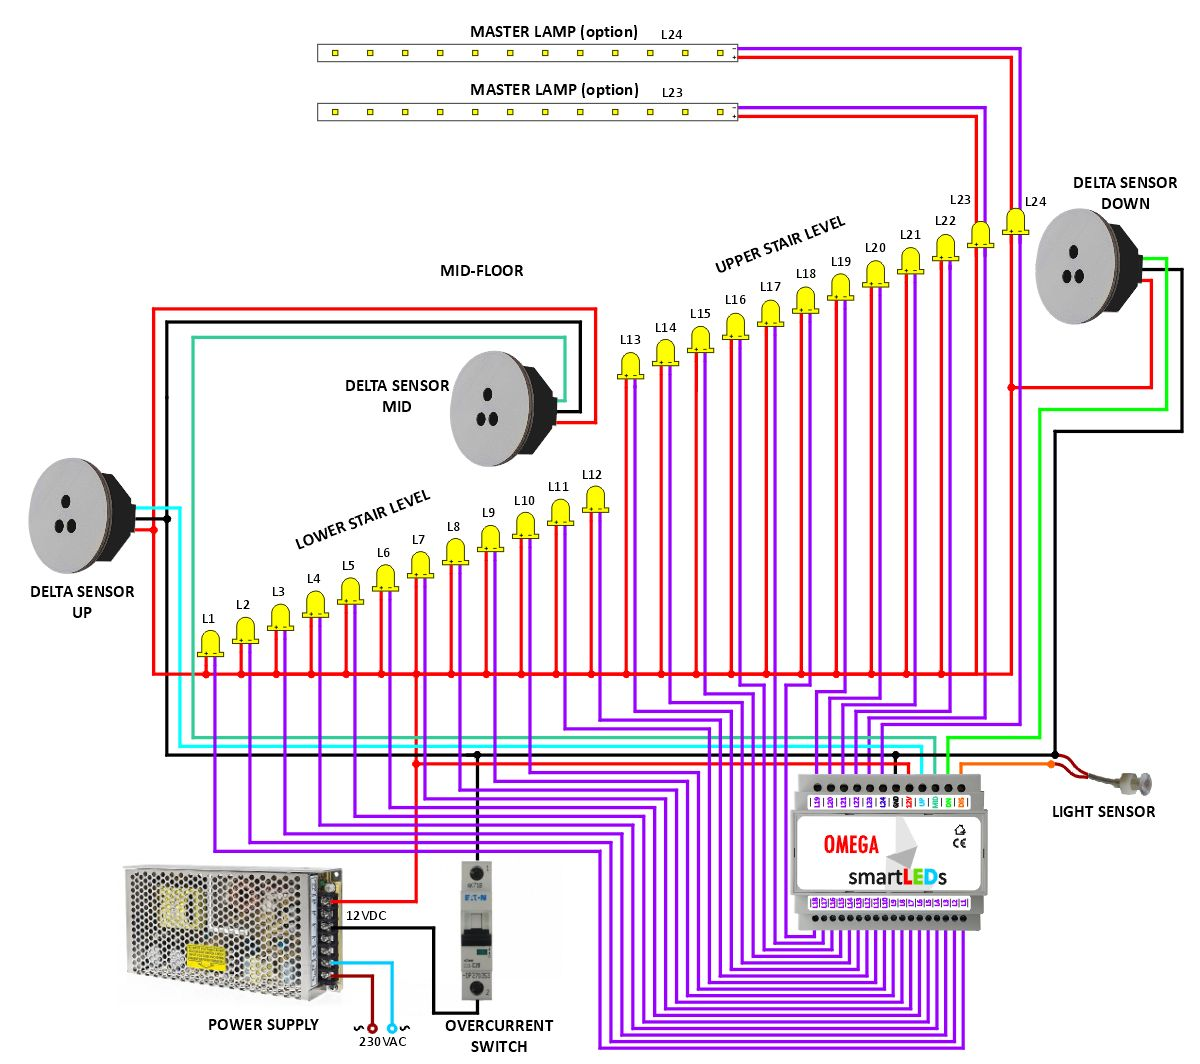 Installation diagram of the Exclusive LED stair lighting system with OMEGA controller and DELTA motion sensors